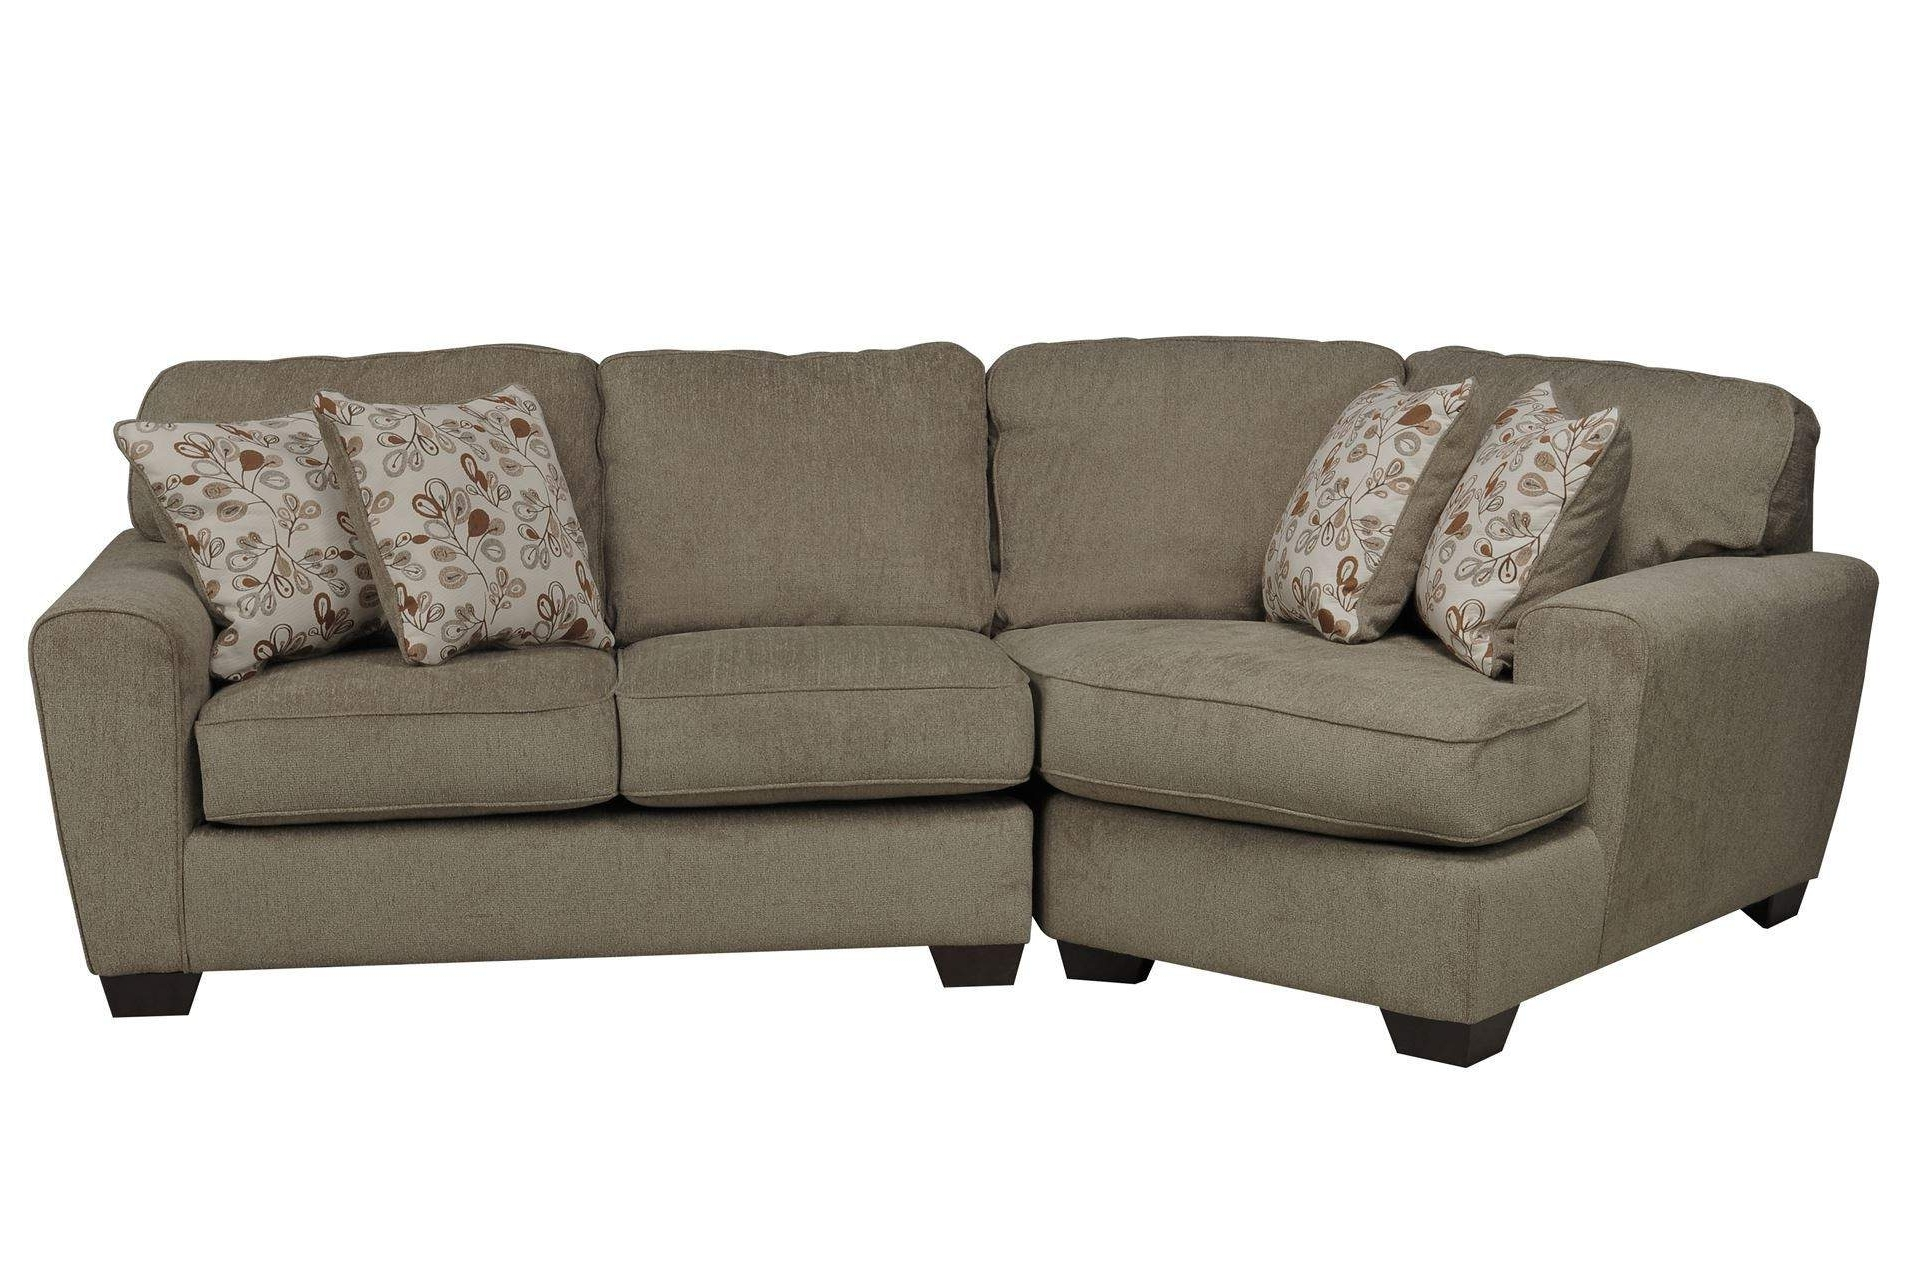 Sectional Sofa With Cuddler Chaise – Nrhcares With Most Popular Sectional Sofas With Cuddler Chaise (View 15 of 15)